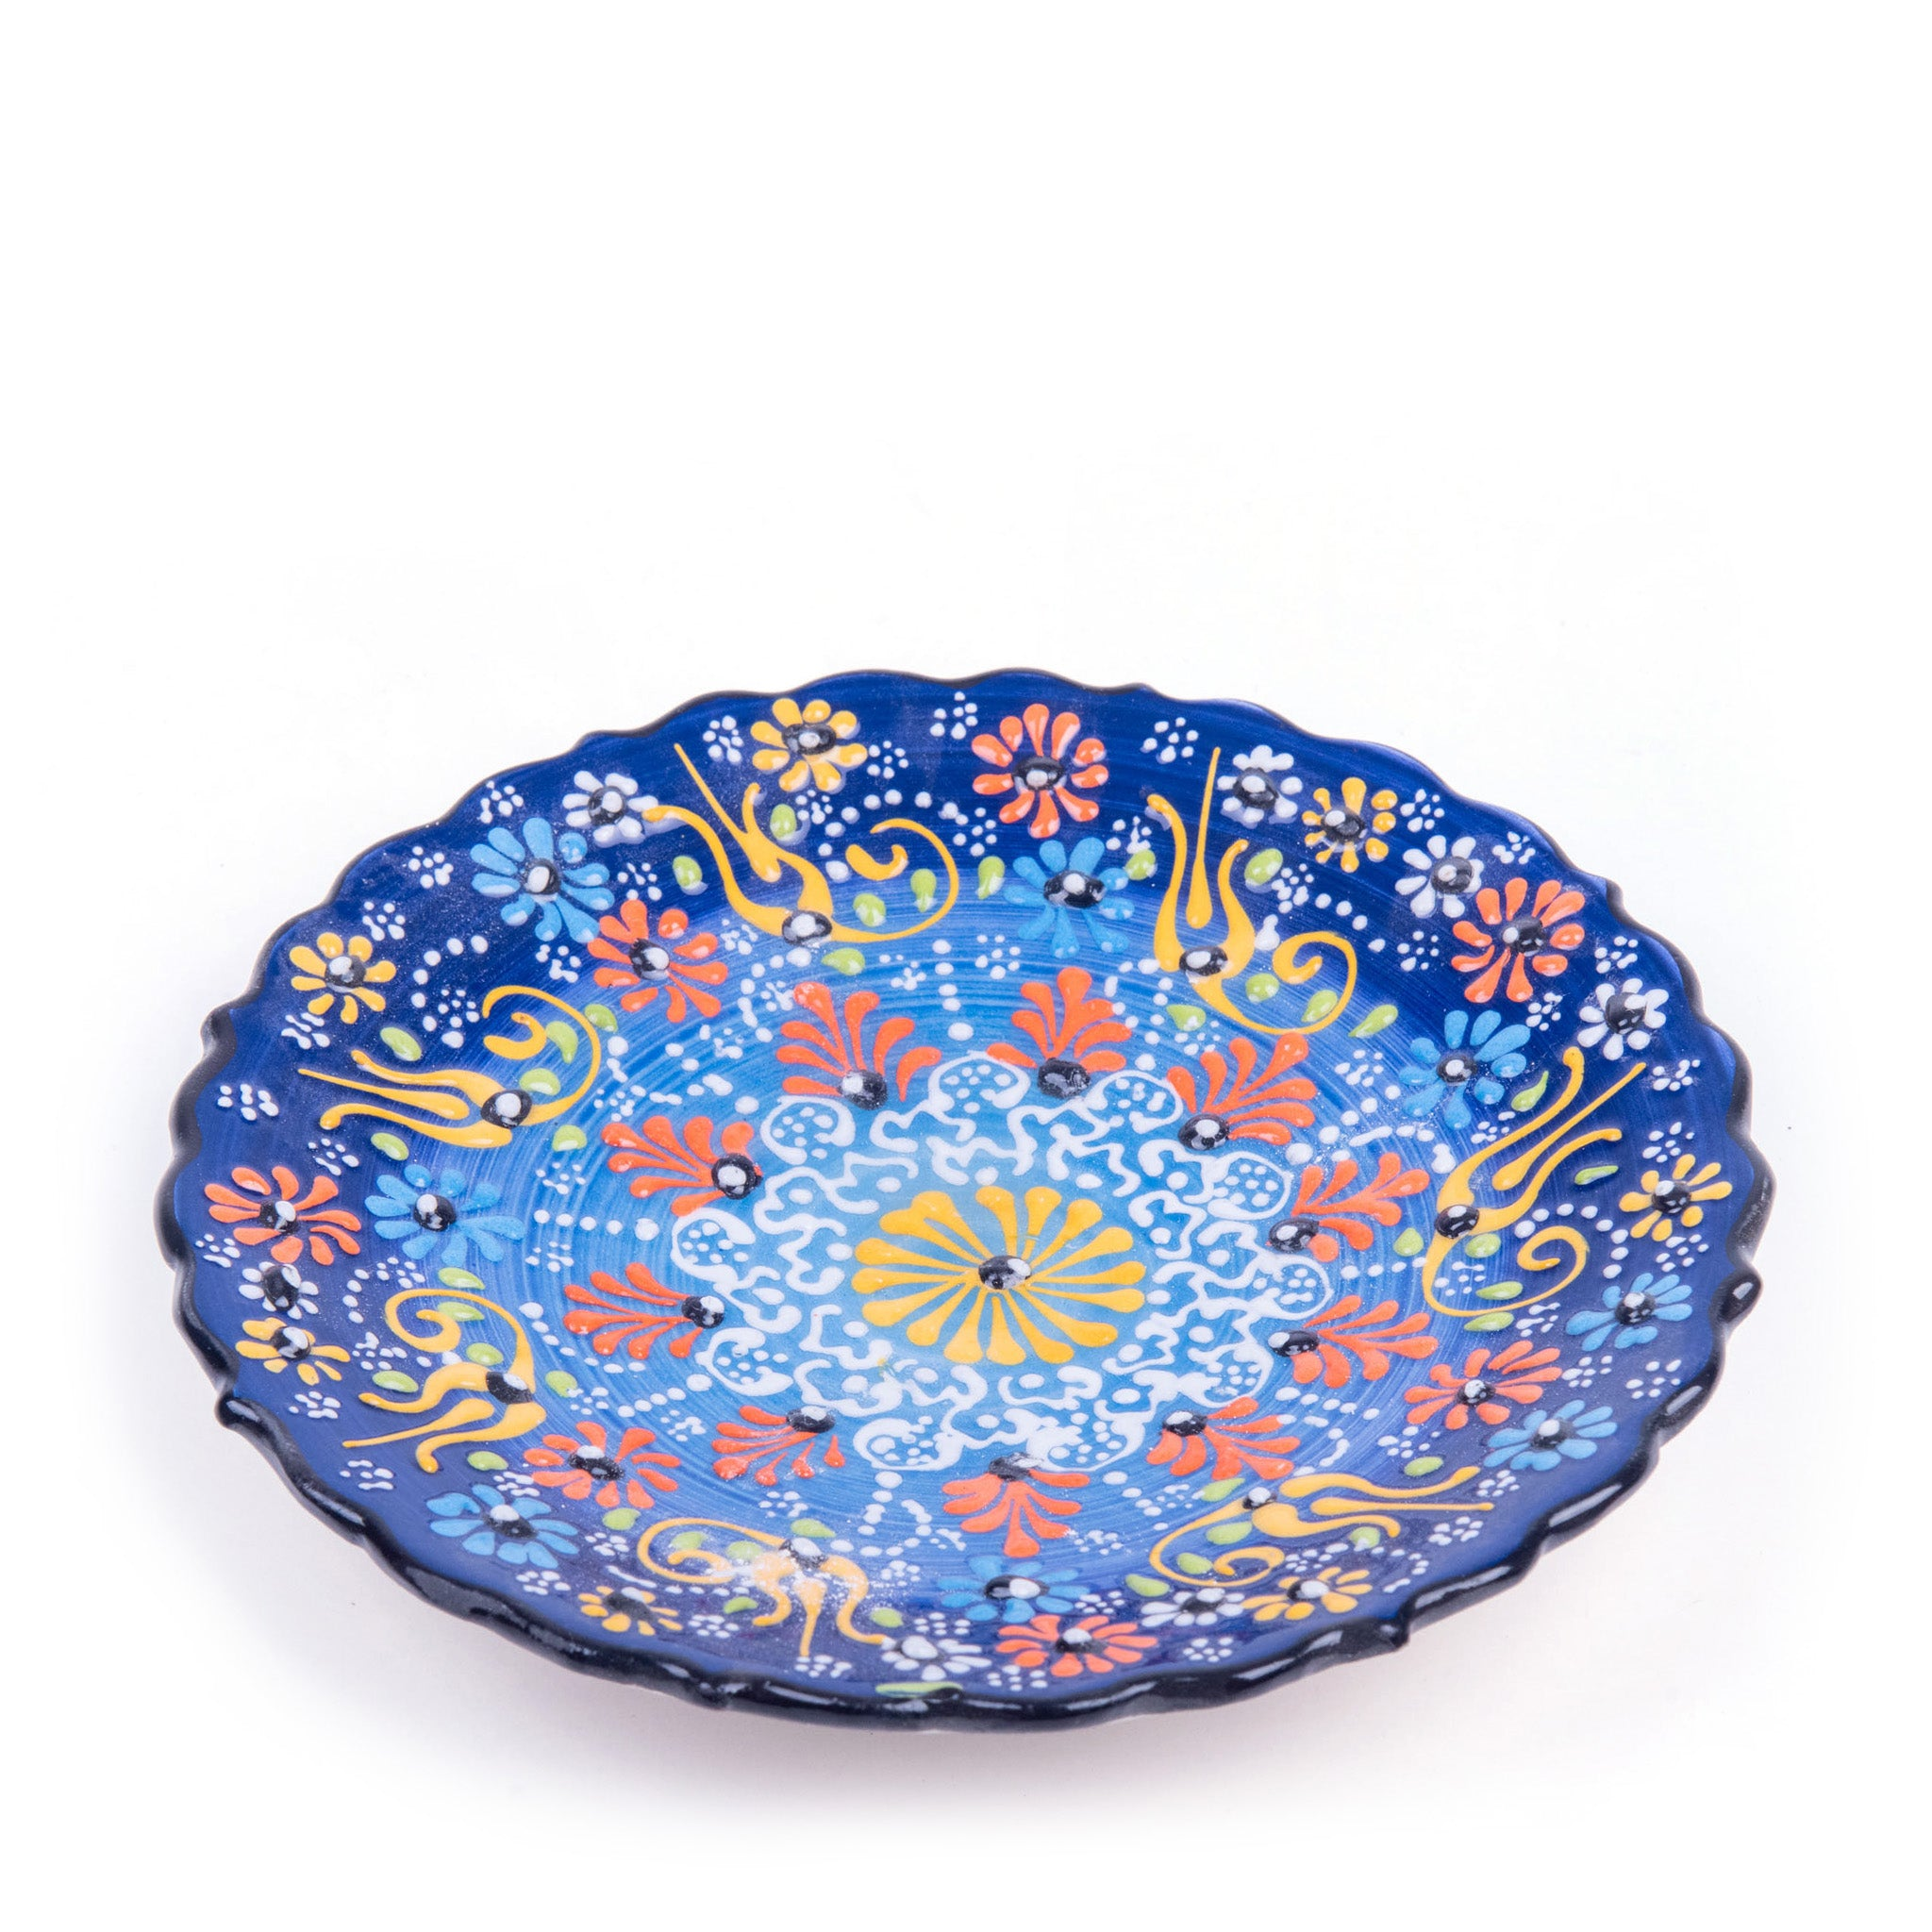 "Turkish Ceramic Iznik Design Handmade Round Plate - 18 cm (7.2"")-1"